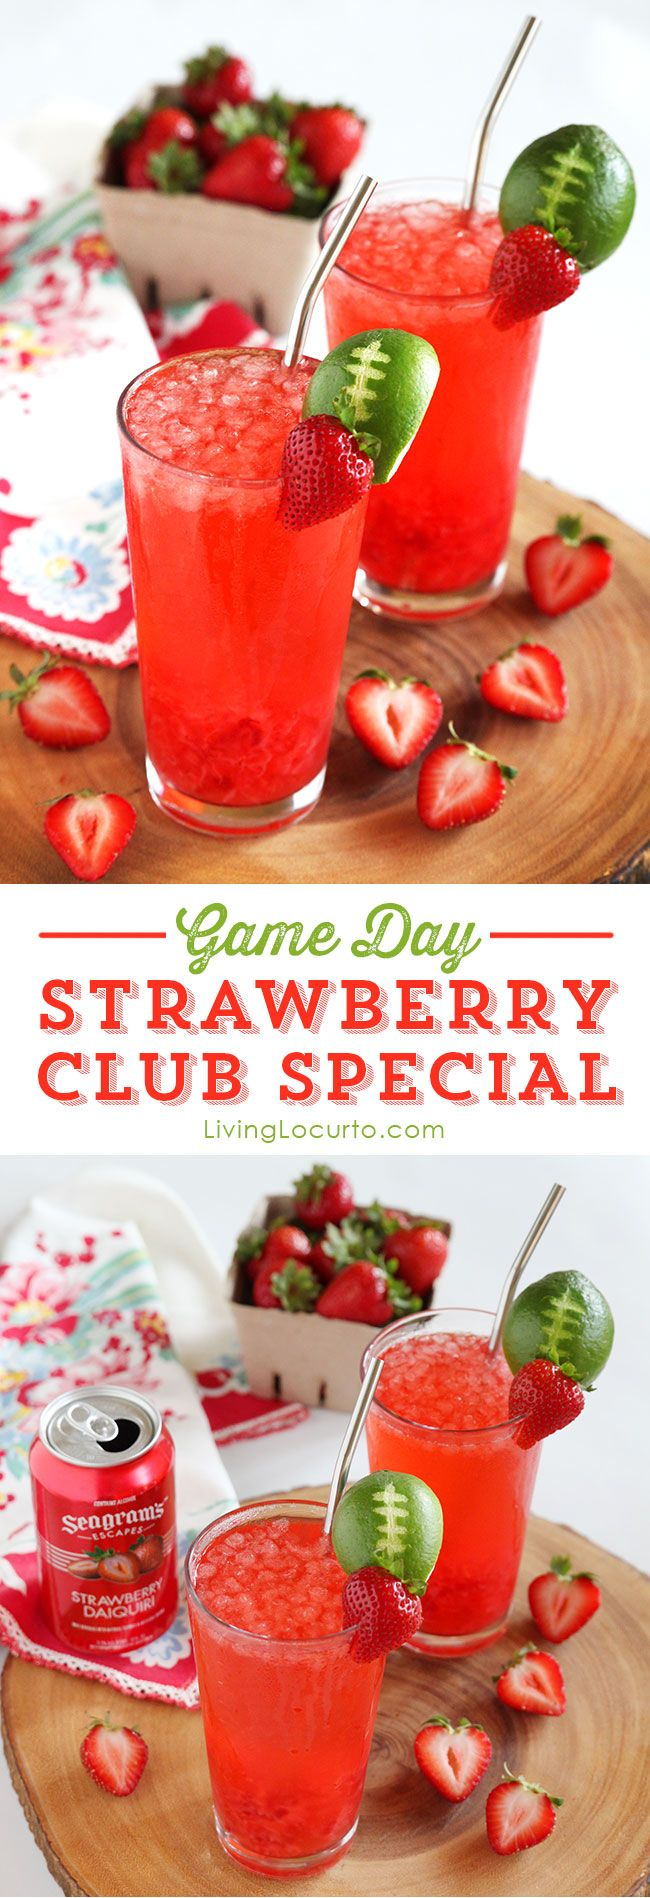 Strawberry Club Special Cocktail is a fresh and fruity drink recipe to serve at your next party. A perfect game day drink with a lime football garnish! @livinglocurto #colorfulkickoff